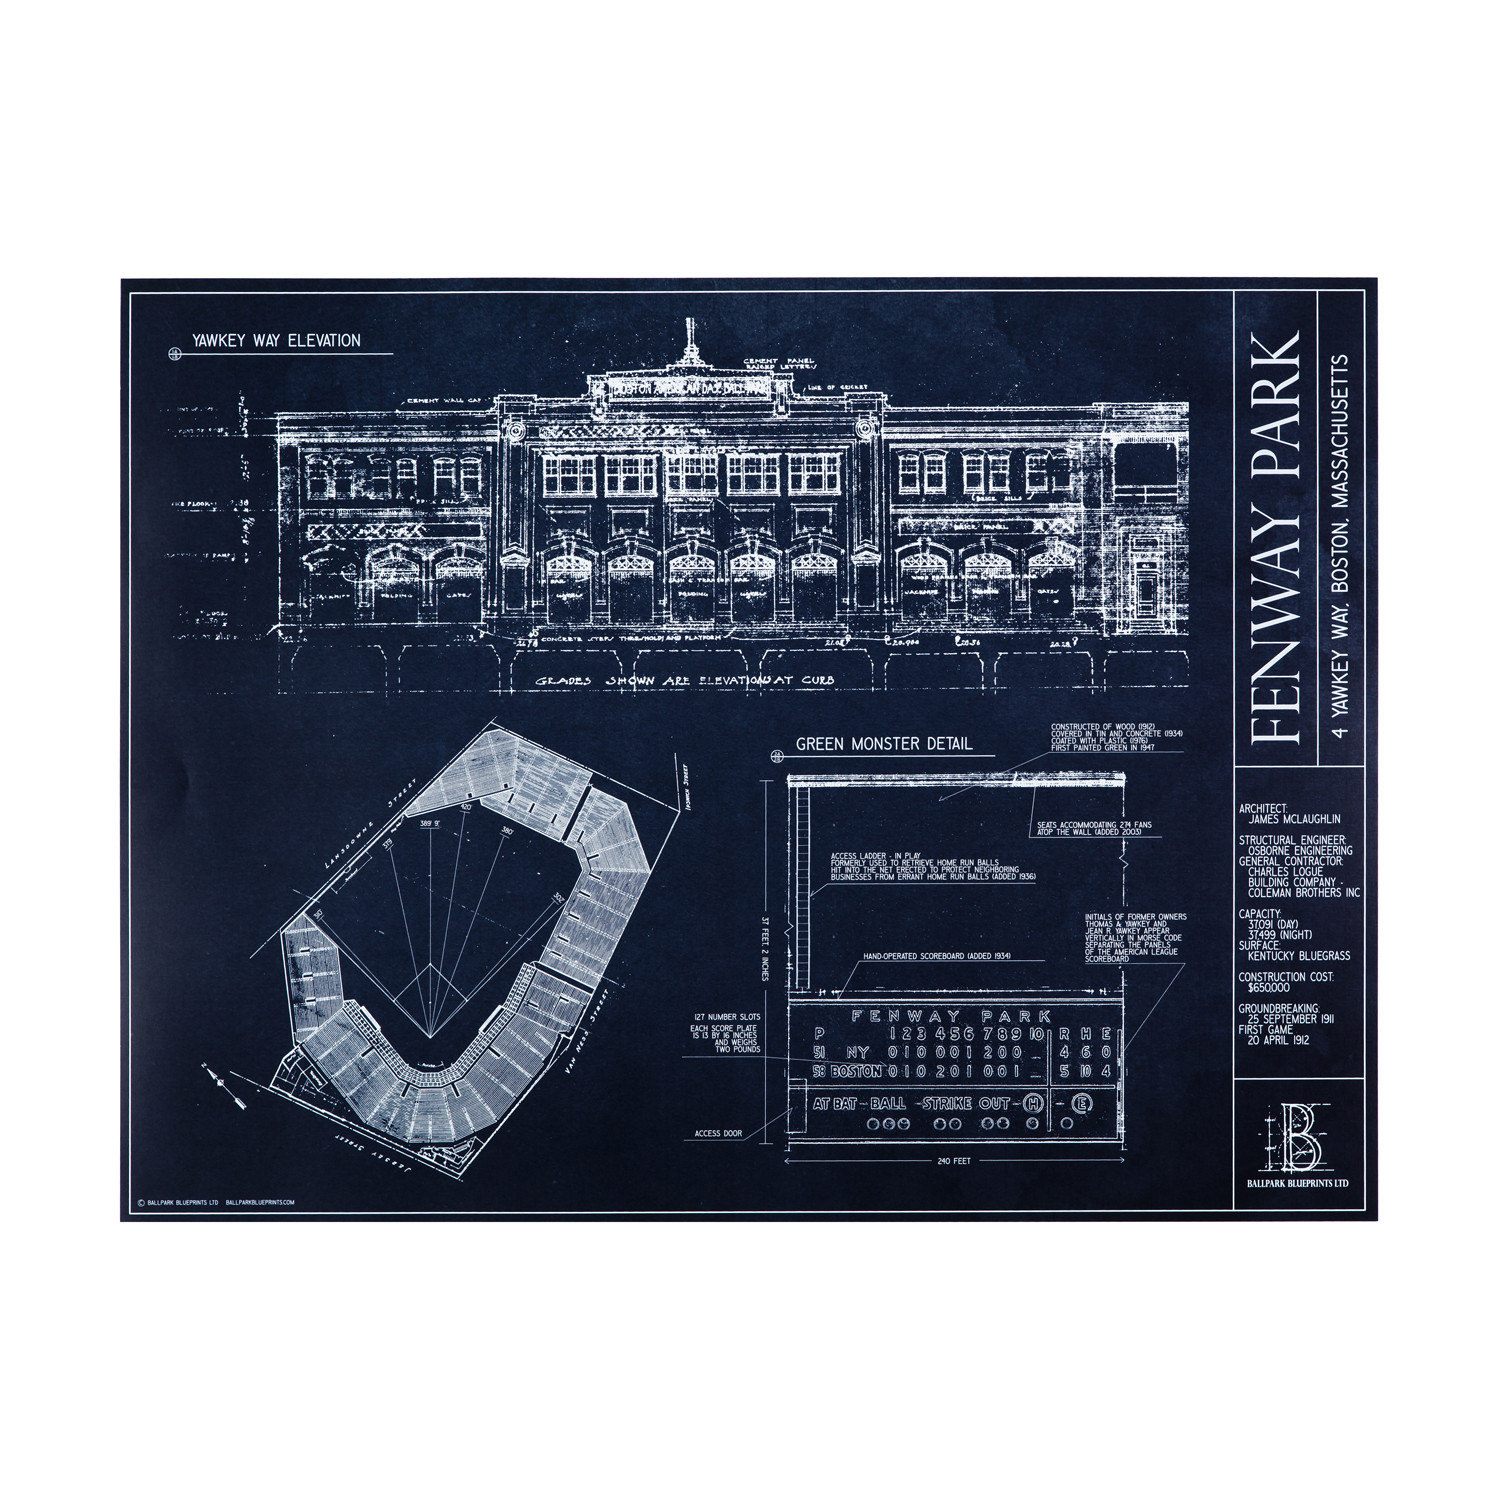 Fenway park boston red sox ballpark blueprints touch of modern fenway park boston red sox malvernweather Choice Image